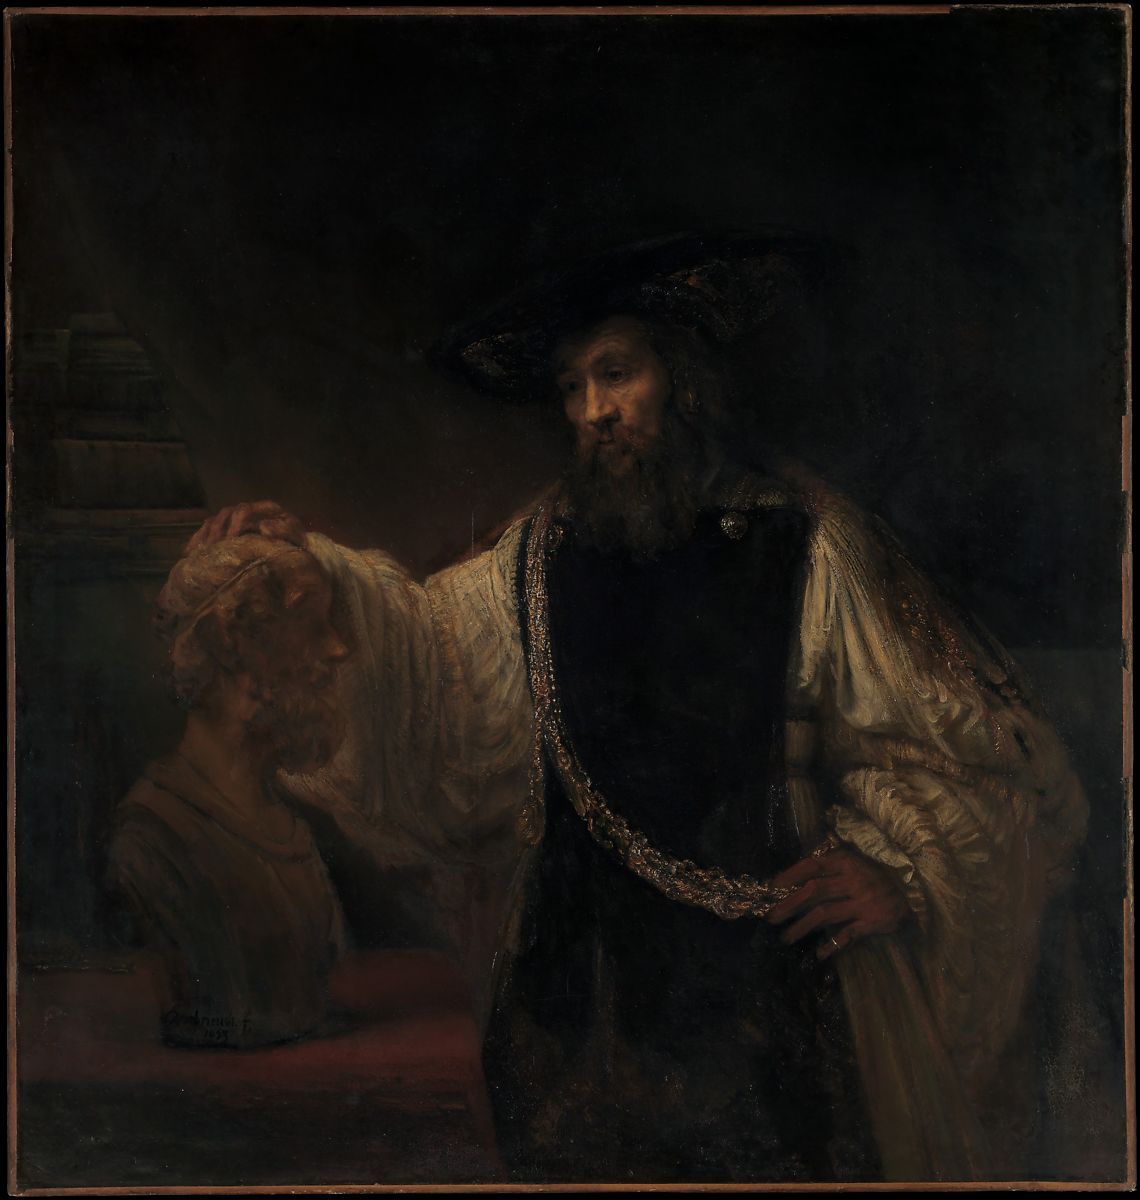 Rembrandt van Rijn, Aristotle with a Bust of Homer, 1653.jpg